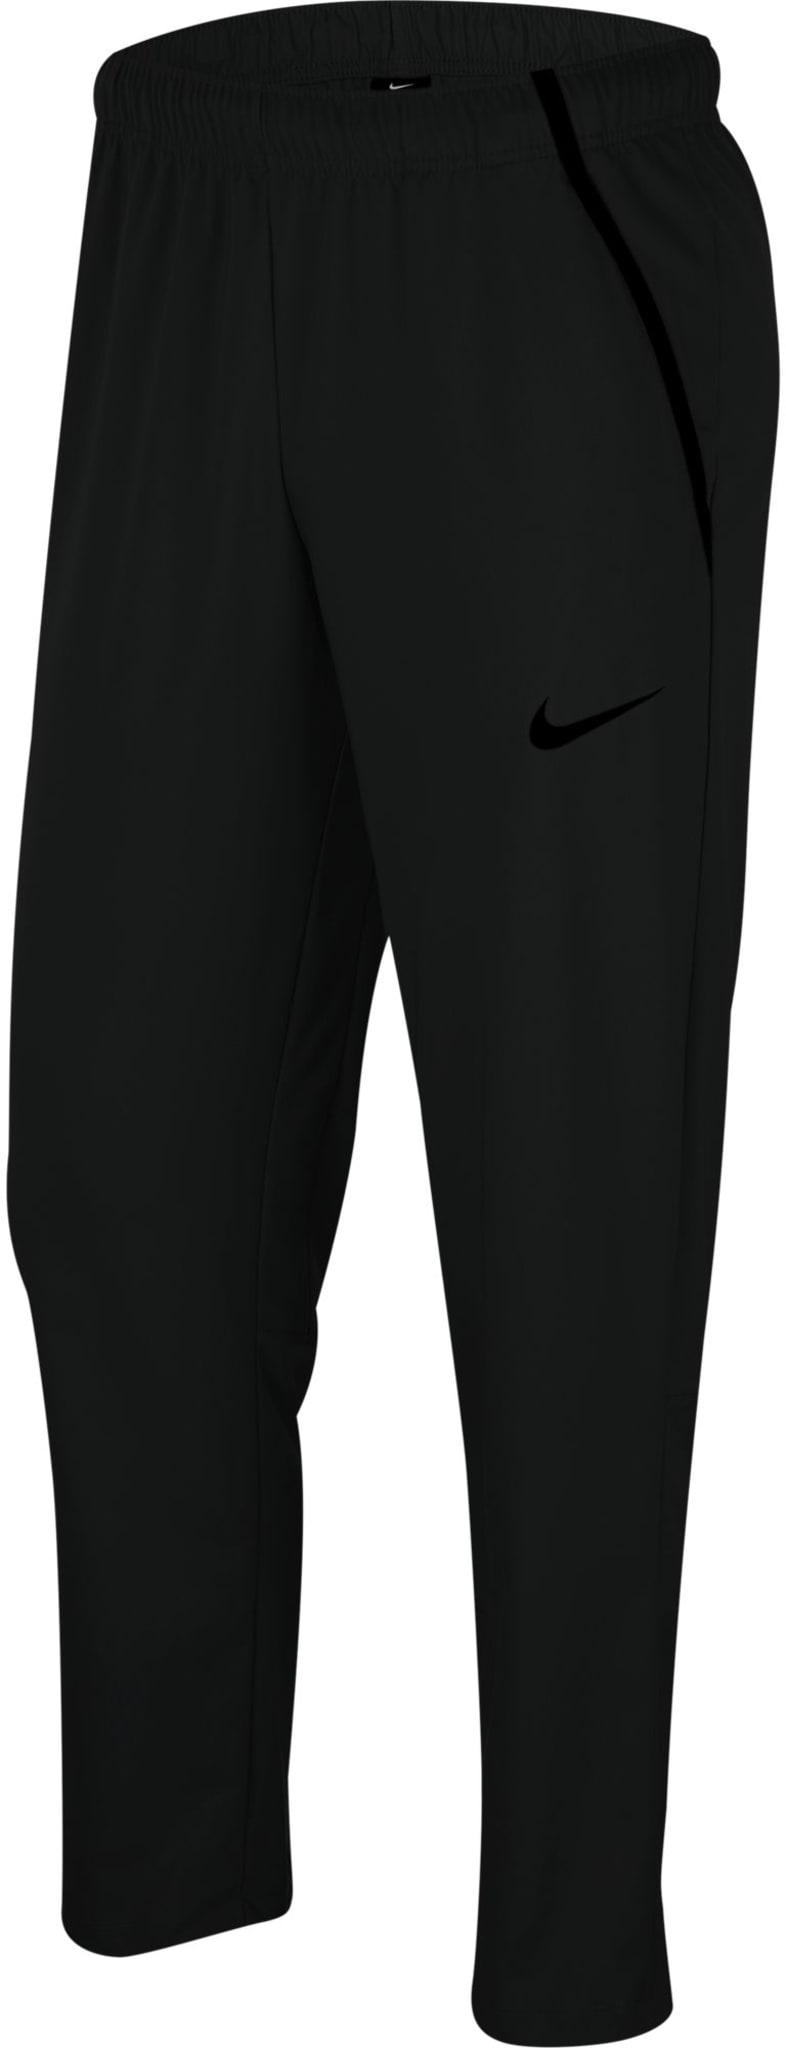 Woven Training Pants